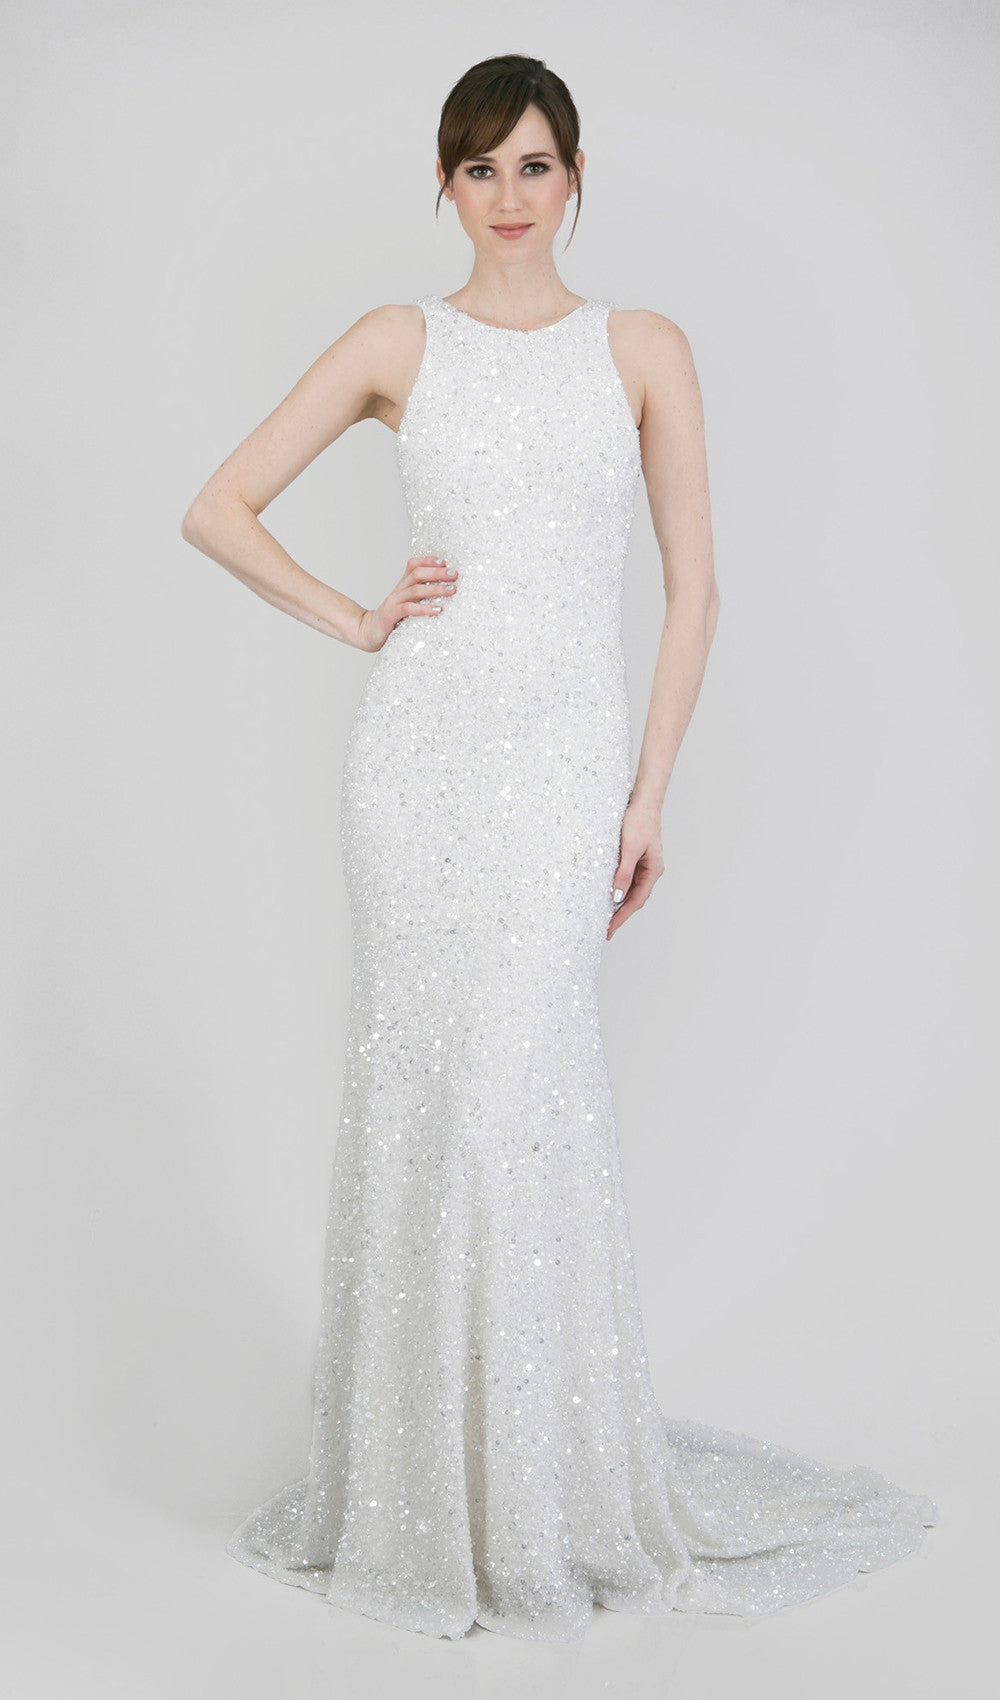 Theia style lenni at schaffer 39 s in des moines iowa for Wedding dresses des moines